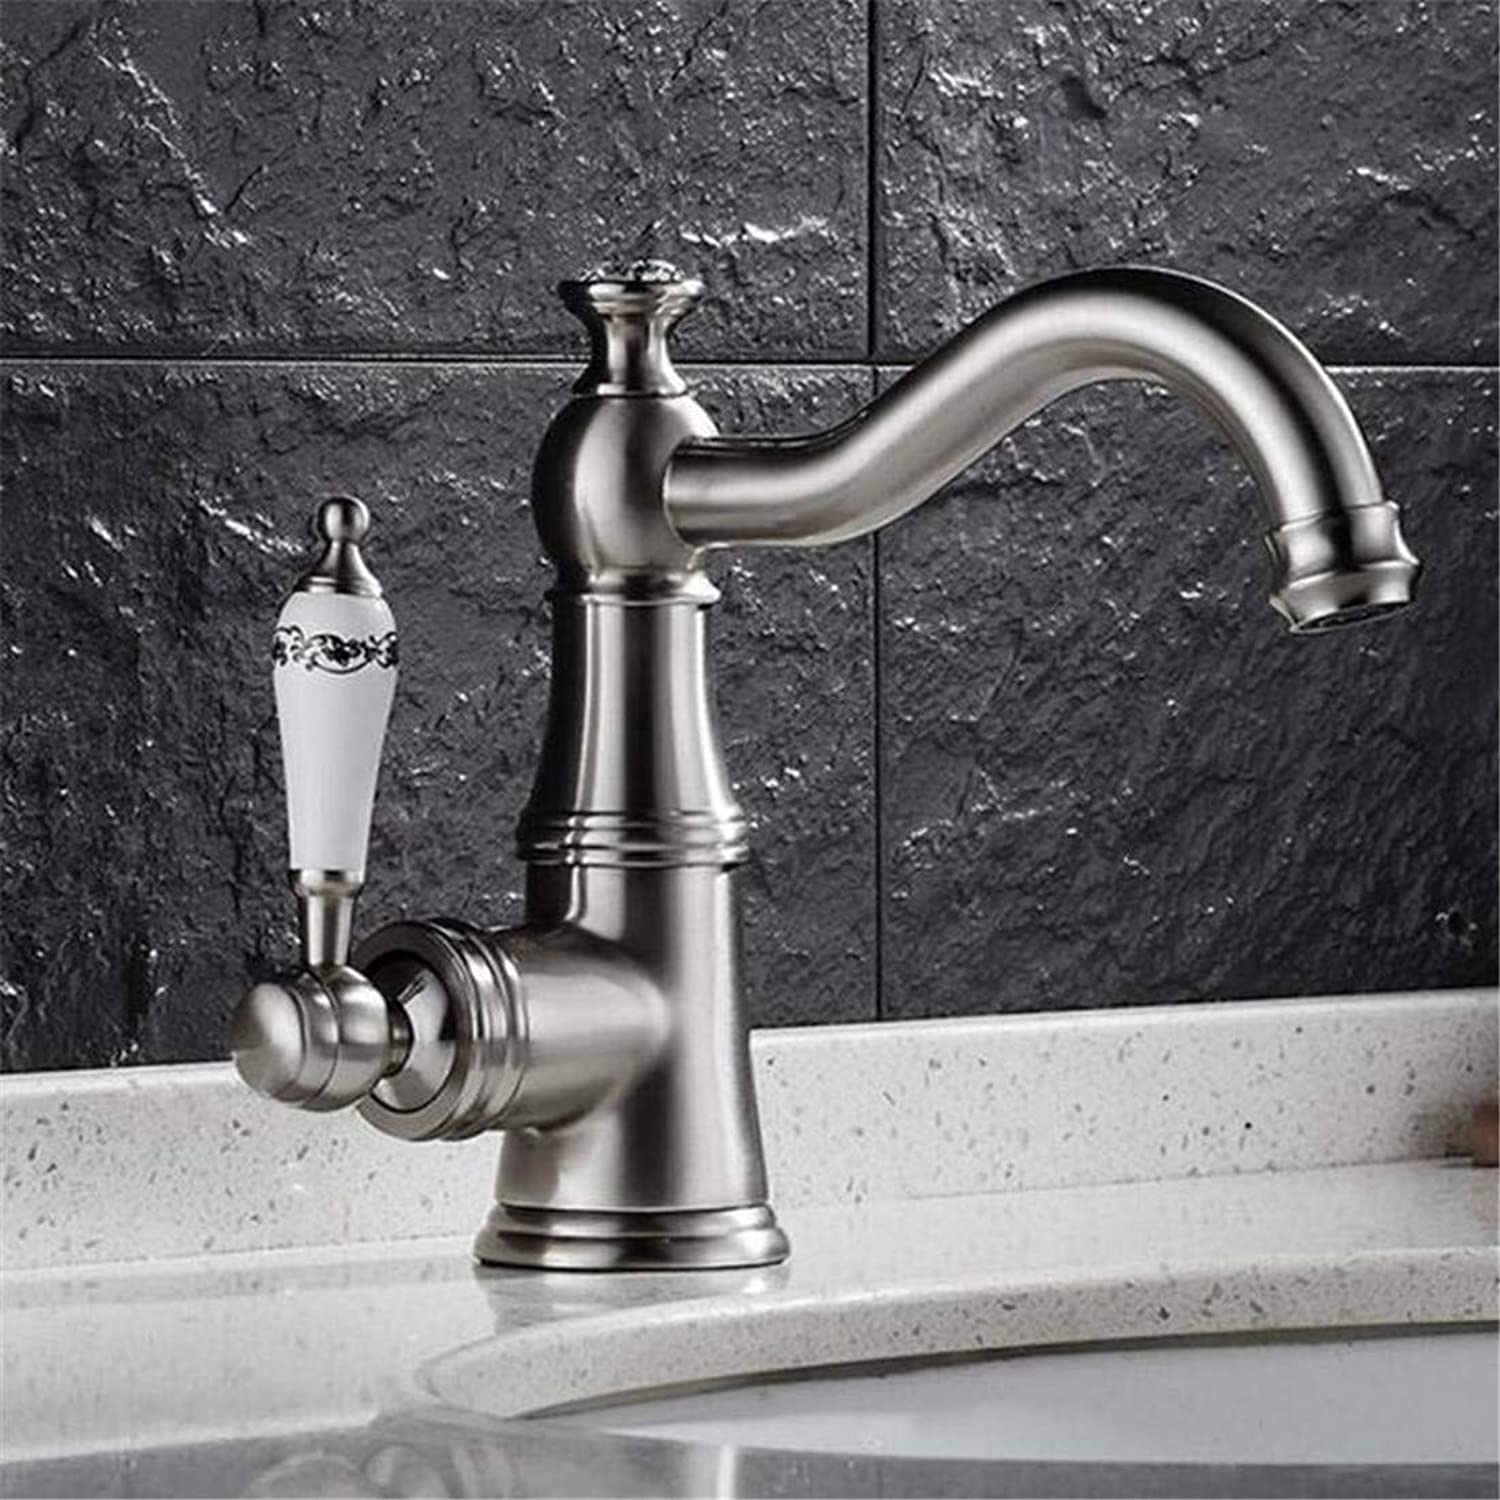 Retro Hot and Cold Faucet Vintage Platingfaucets Basin Mixer Basin Faucet Hot and Cold Water redate Leading Bath Faucet